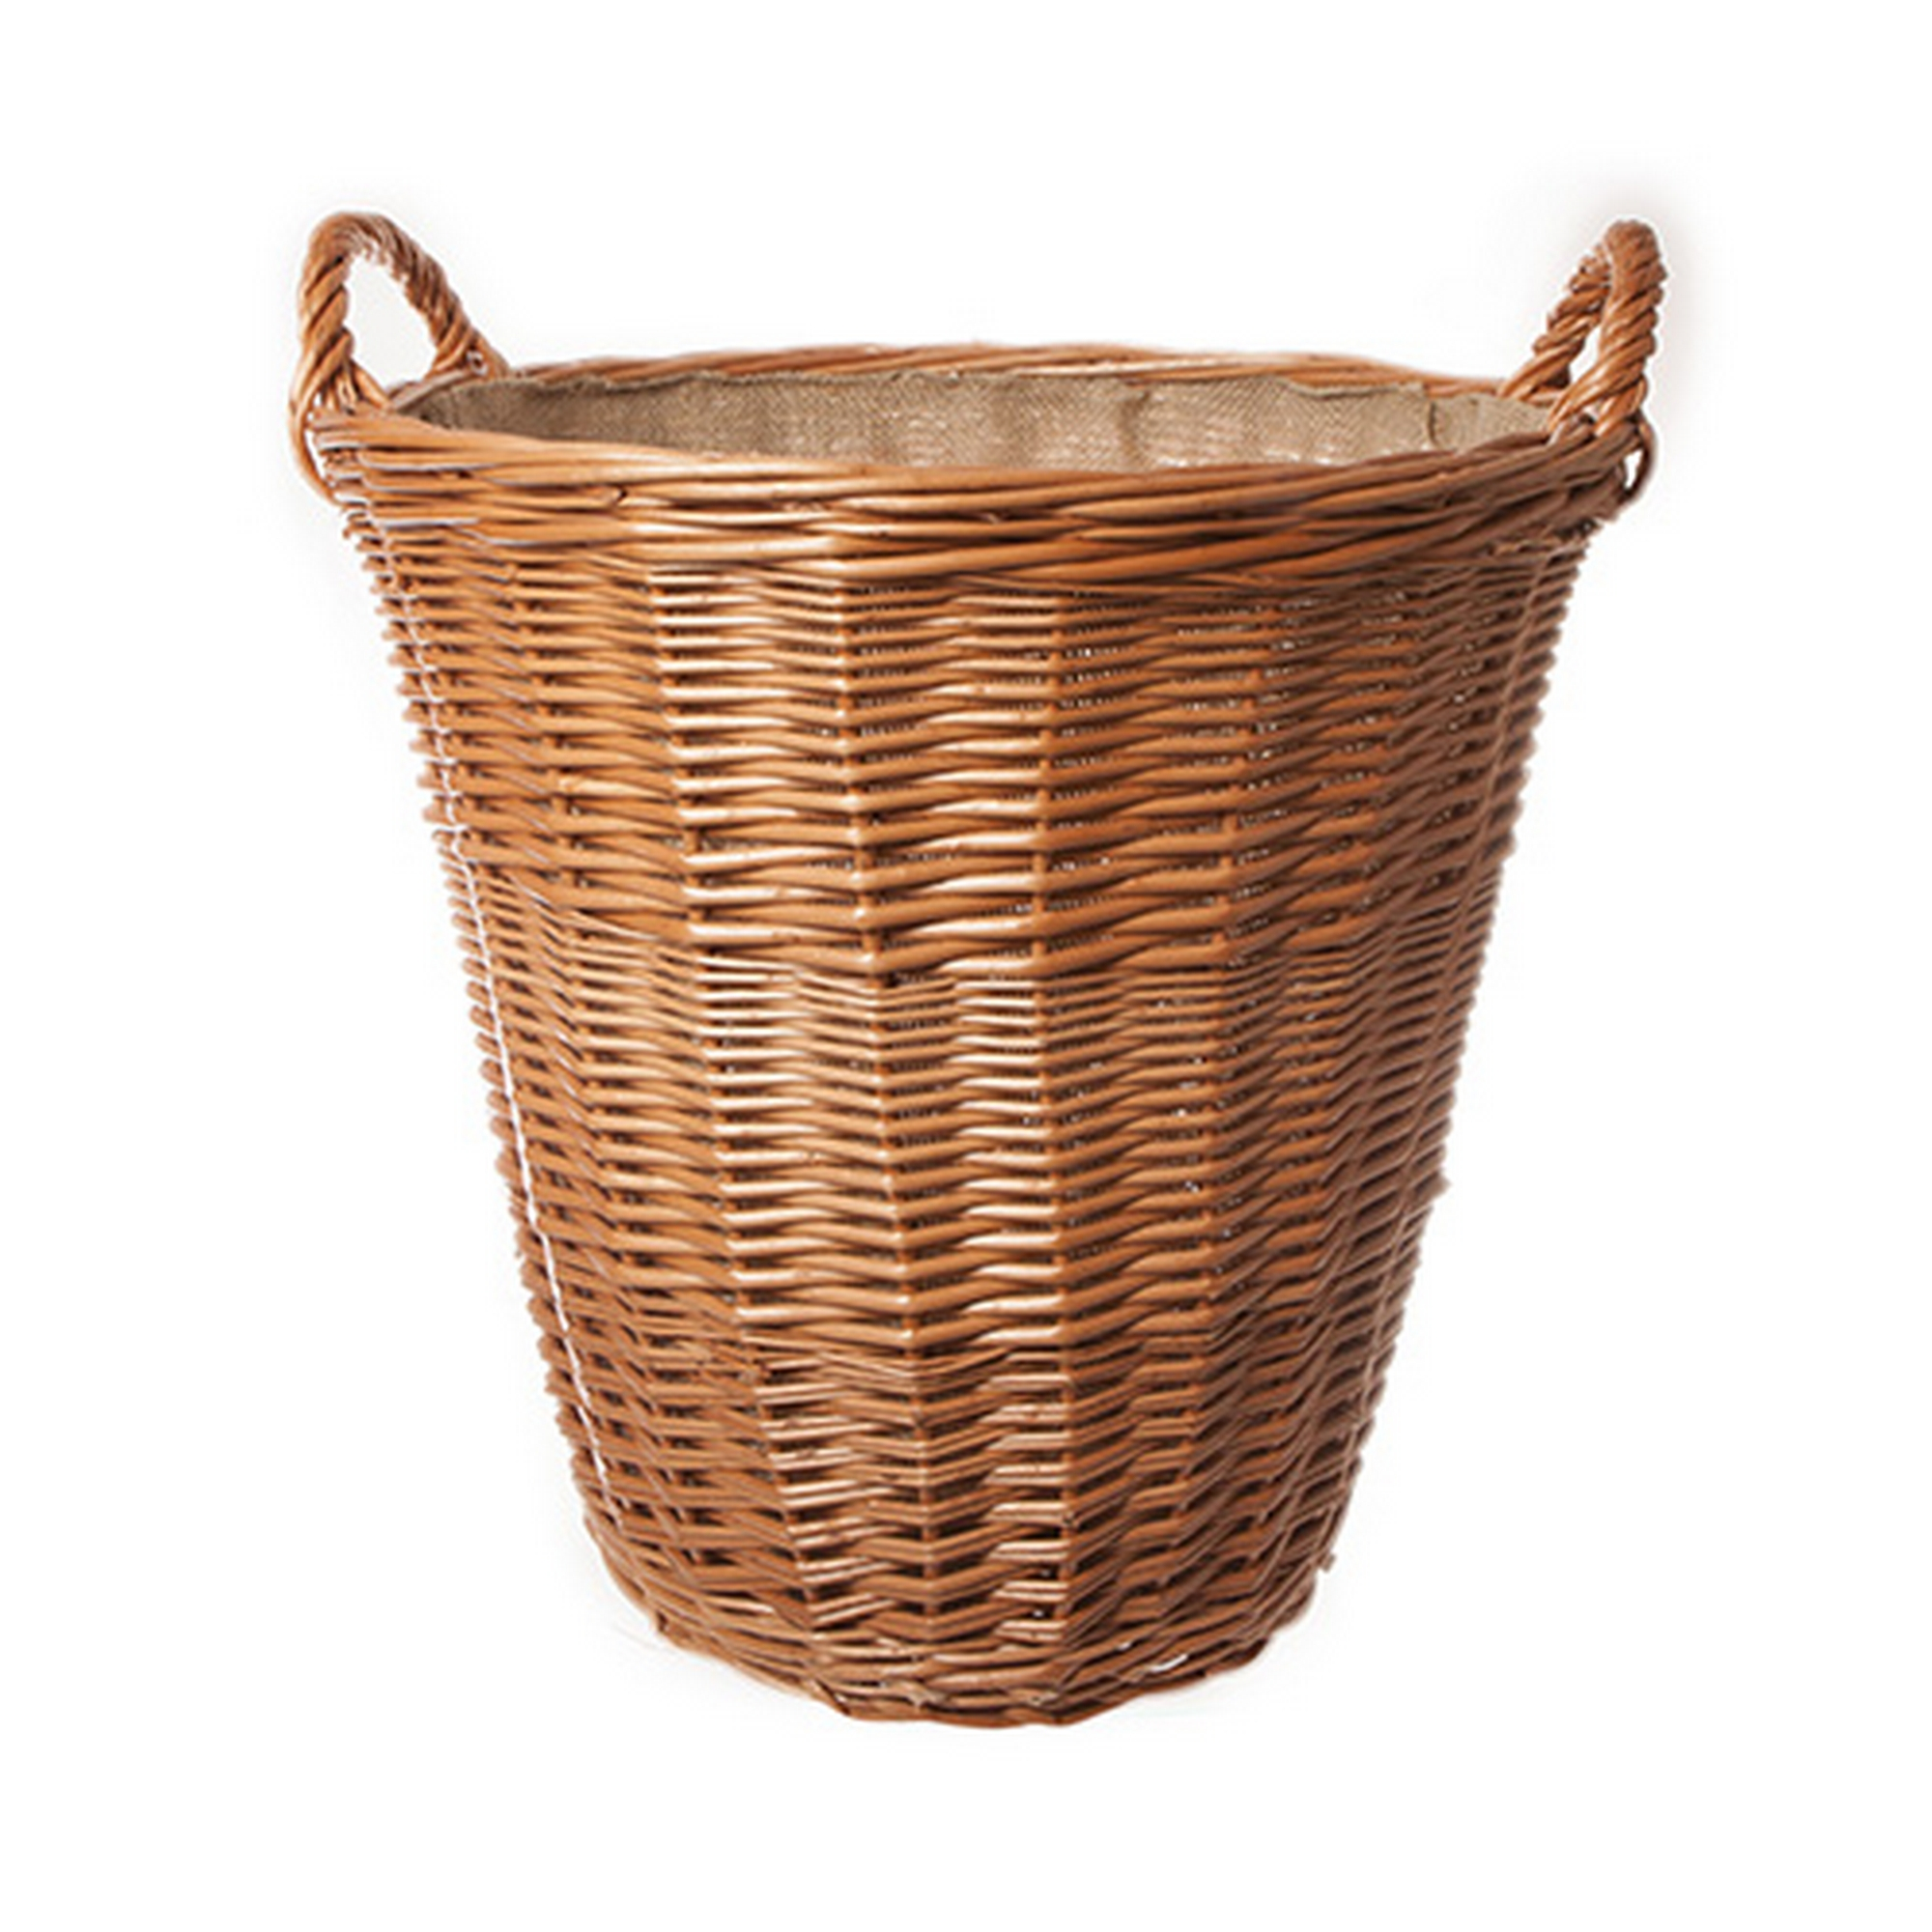 Large Round Wicker Baskets With Handle : Large quality round lined wicker log basket with handles h cm